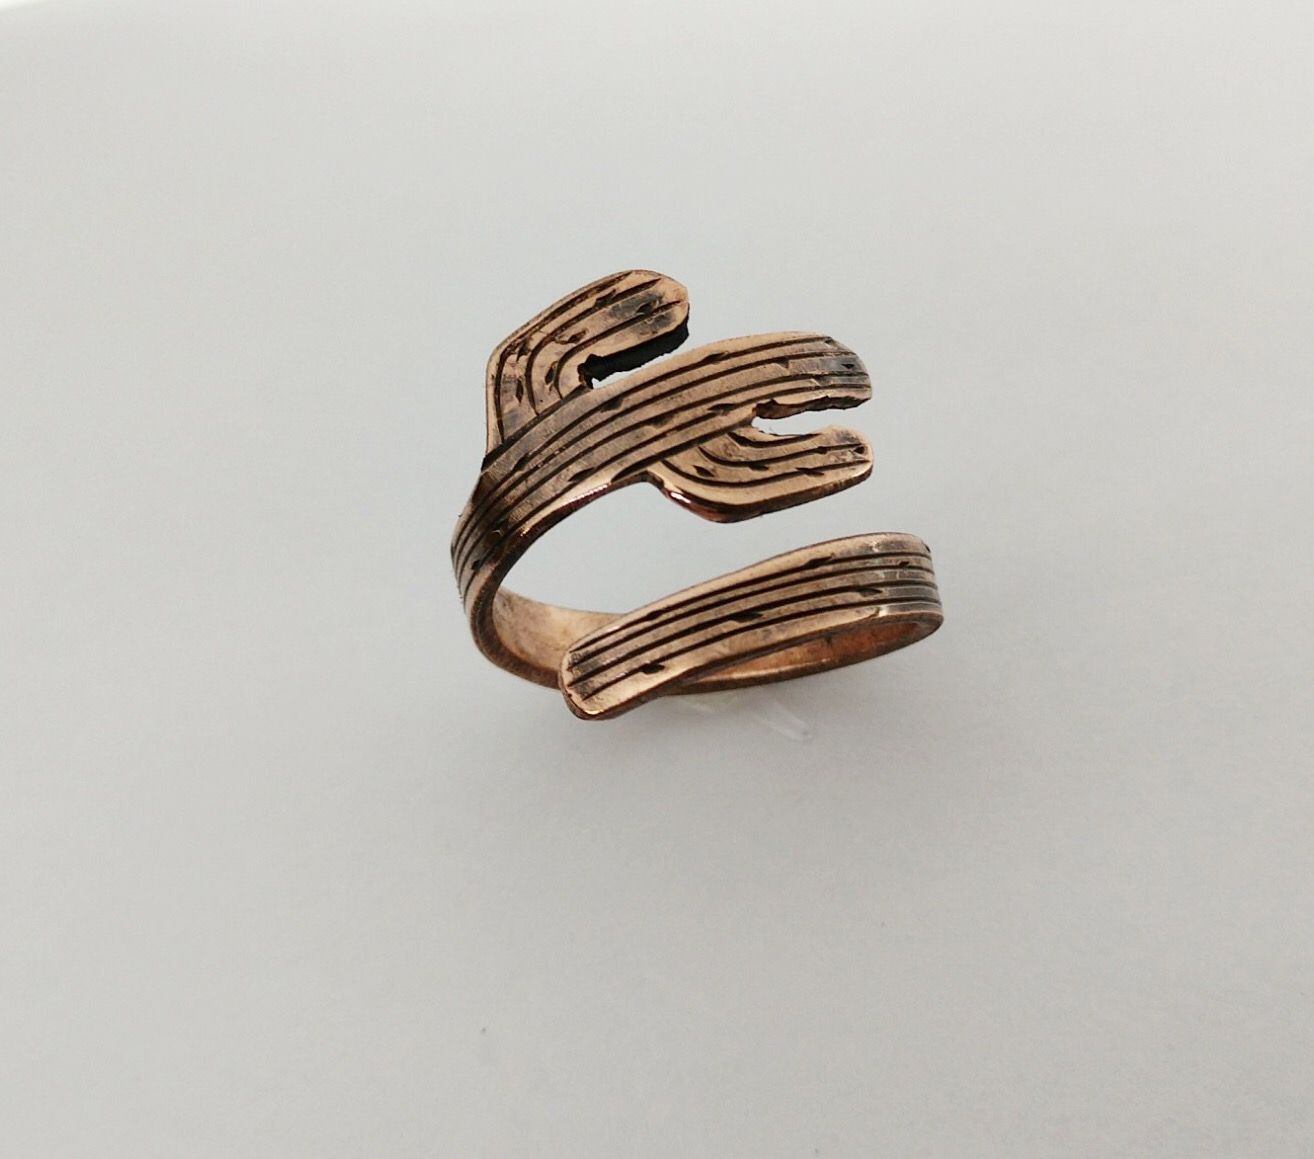 e623fa3f0 Www.dossiecribbs.com Adjustable Copper Cactus Wrap. #cactus #copper  #copperjewelry #nfrfashion #nfr #western #westernfashion #ring #westernart